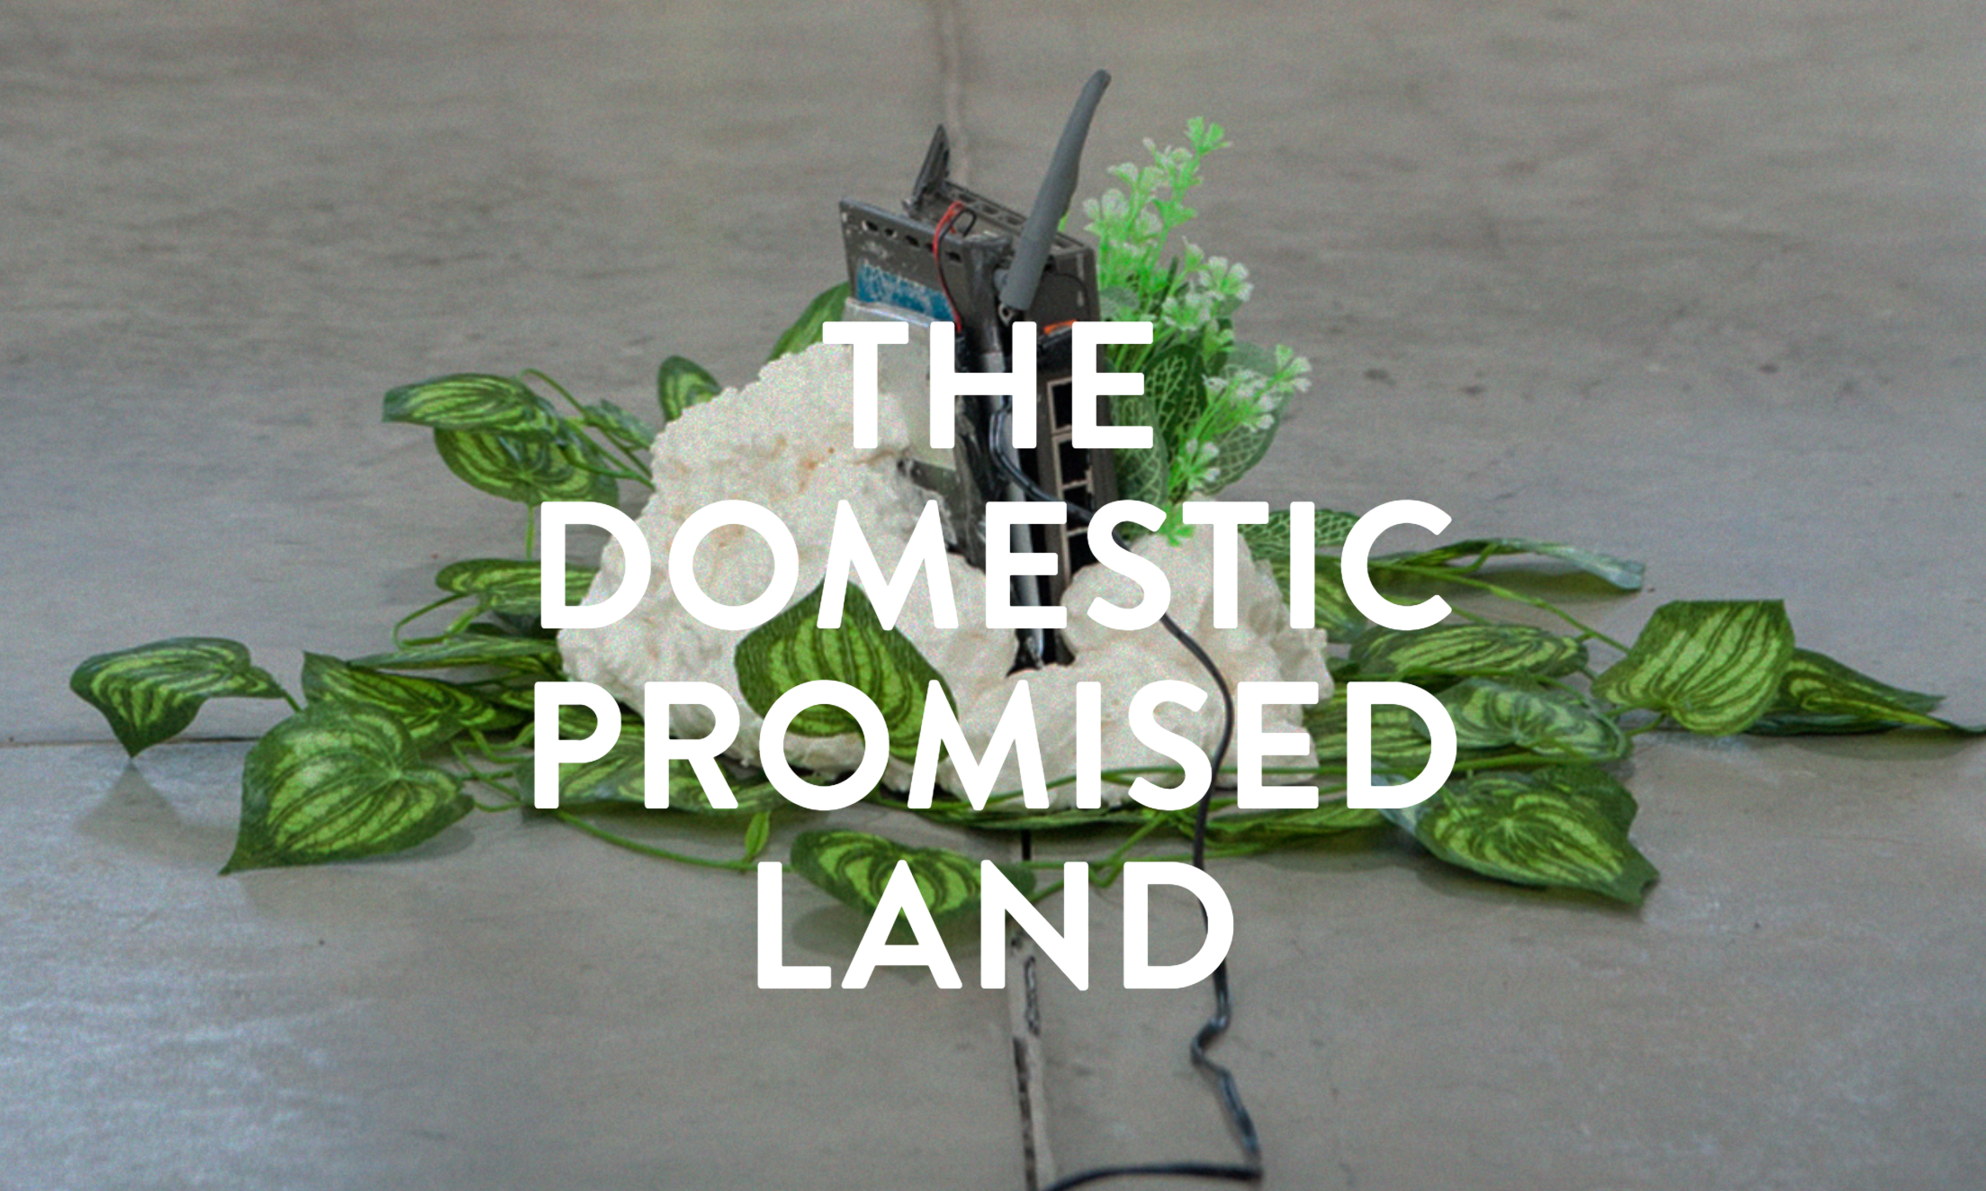 The Domestic Promised Land - parasite 2.0 - Atelier Clerici, Milan - April 2016